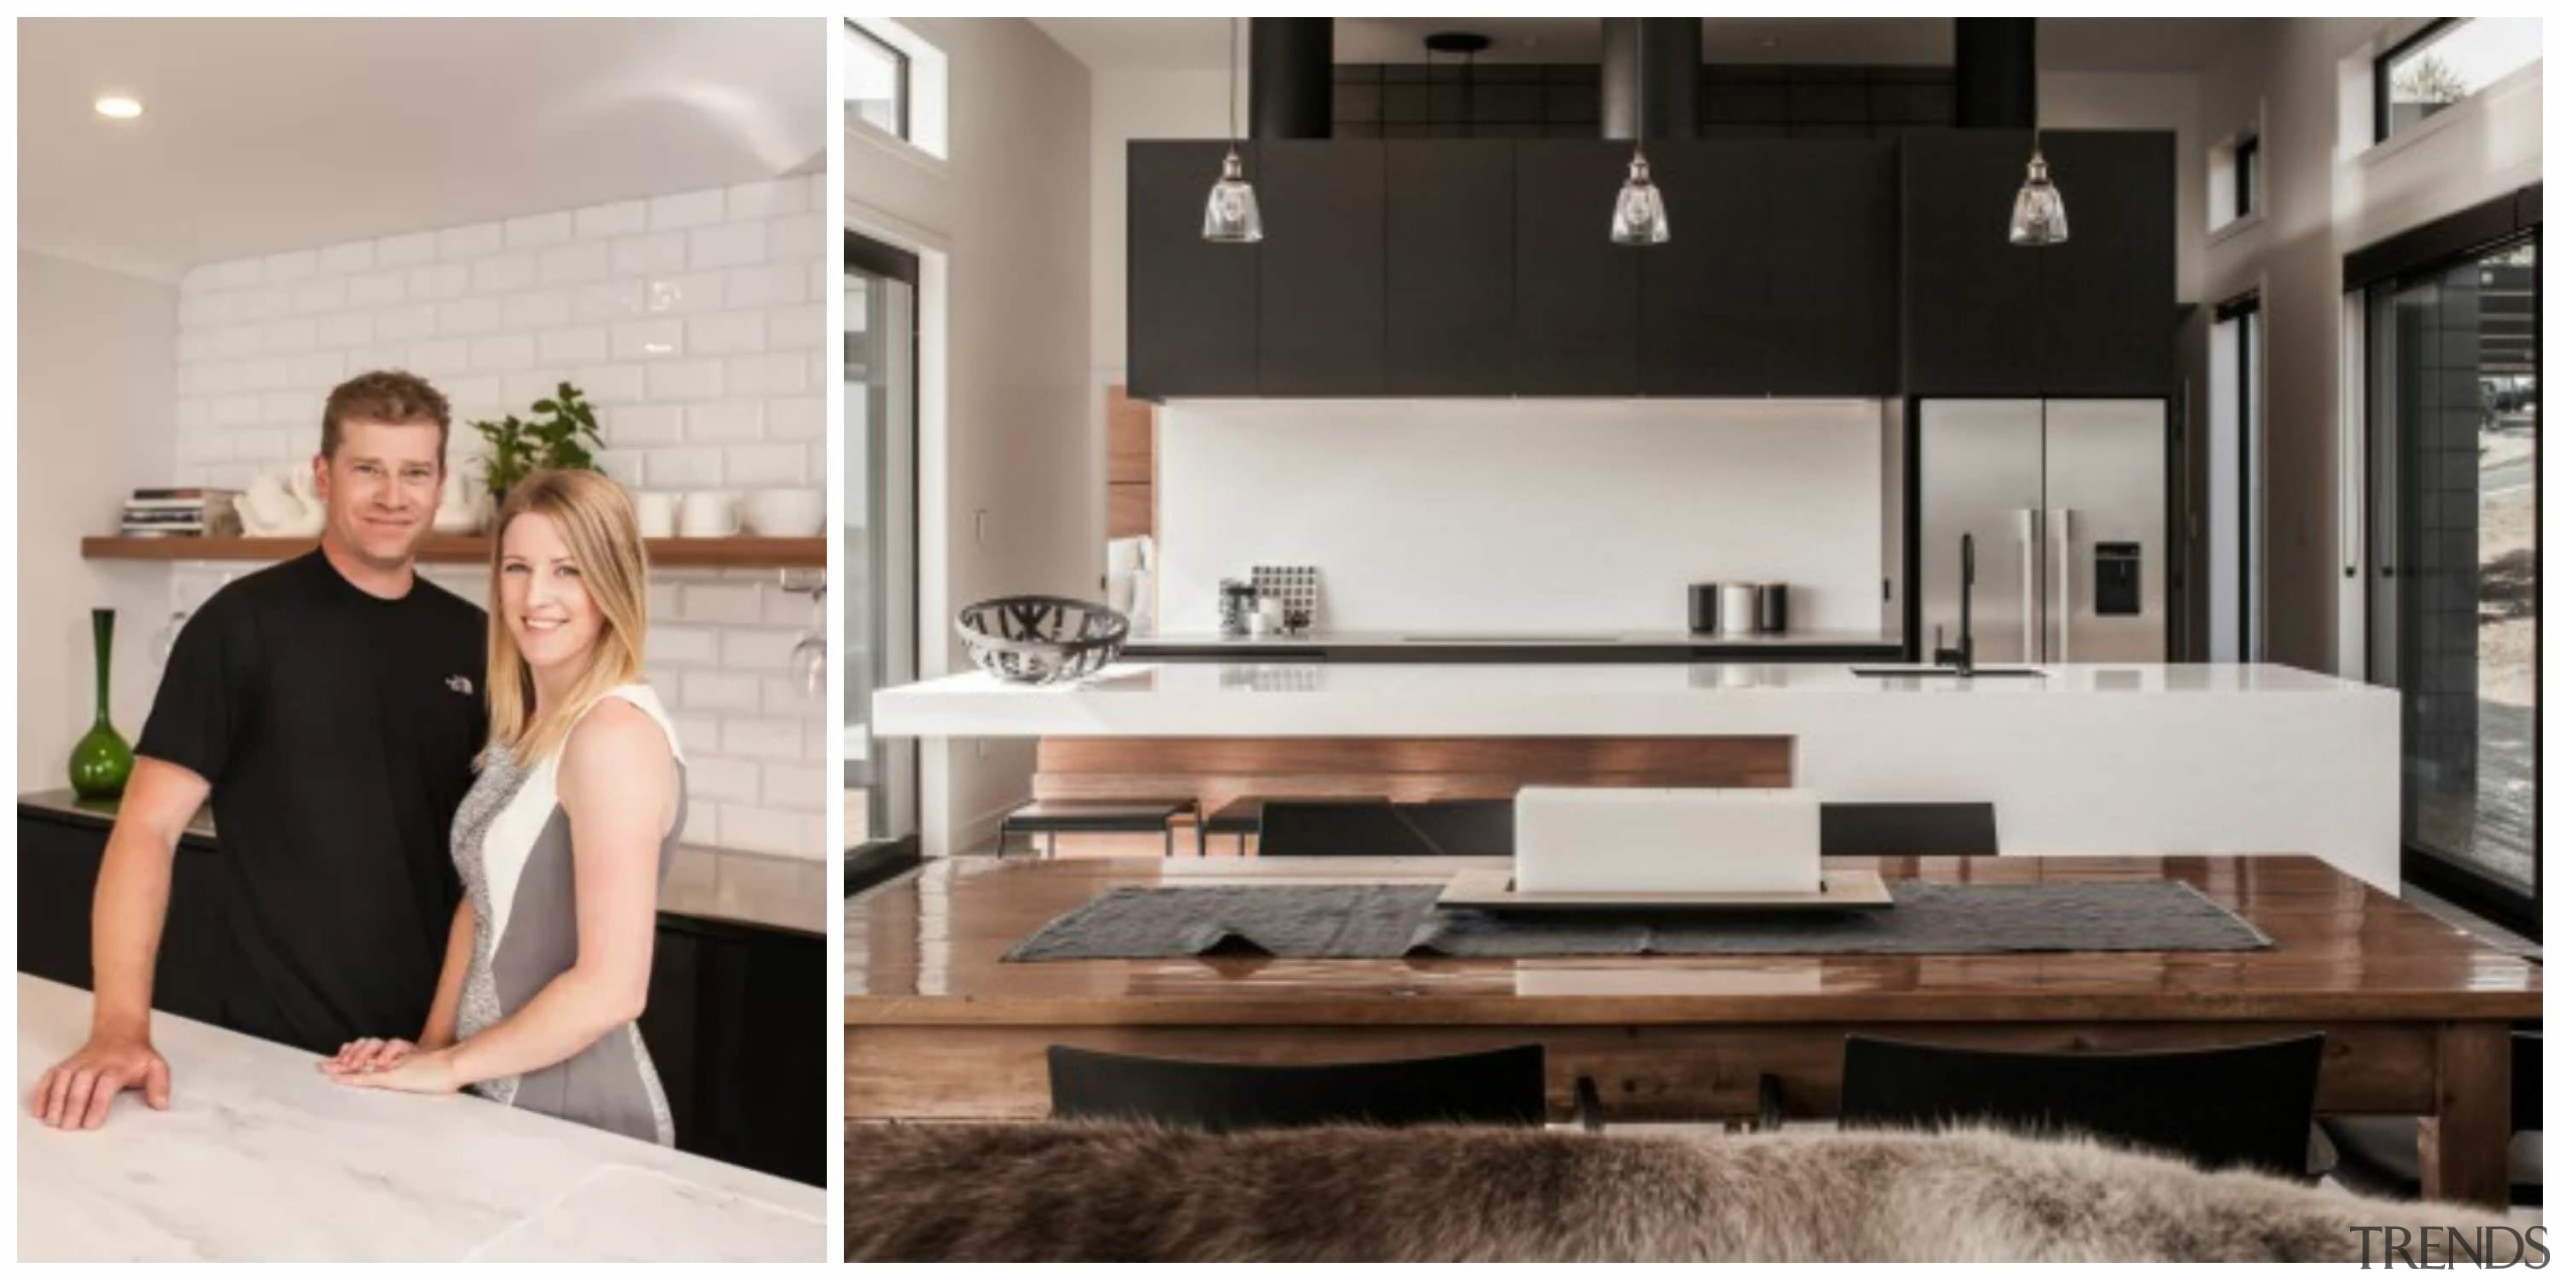 Rowson Kitchen & Joinery - Rowson Kitchen & countertop, furniture, home, interior design, kitchen, product design, room, table, gray, black